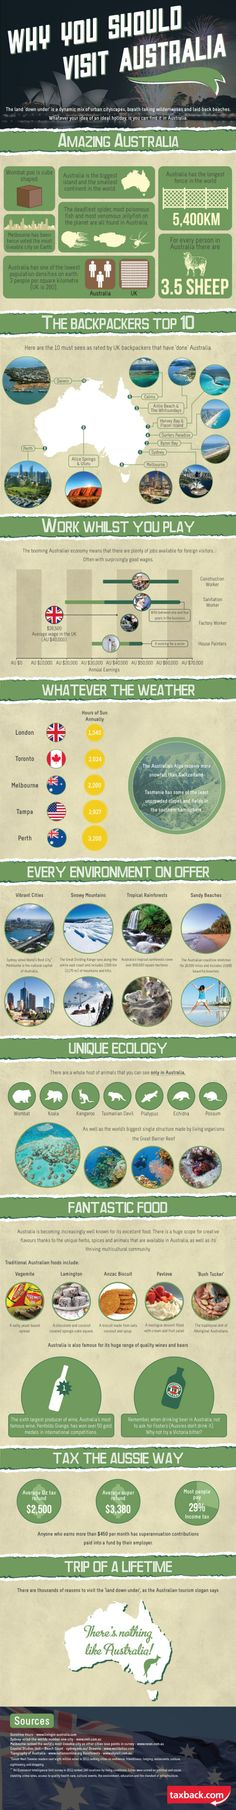 Why you should visit Australia #infographic And also because 4 of my very best friends live there!! :)